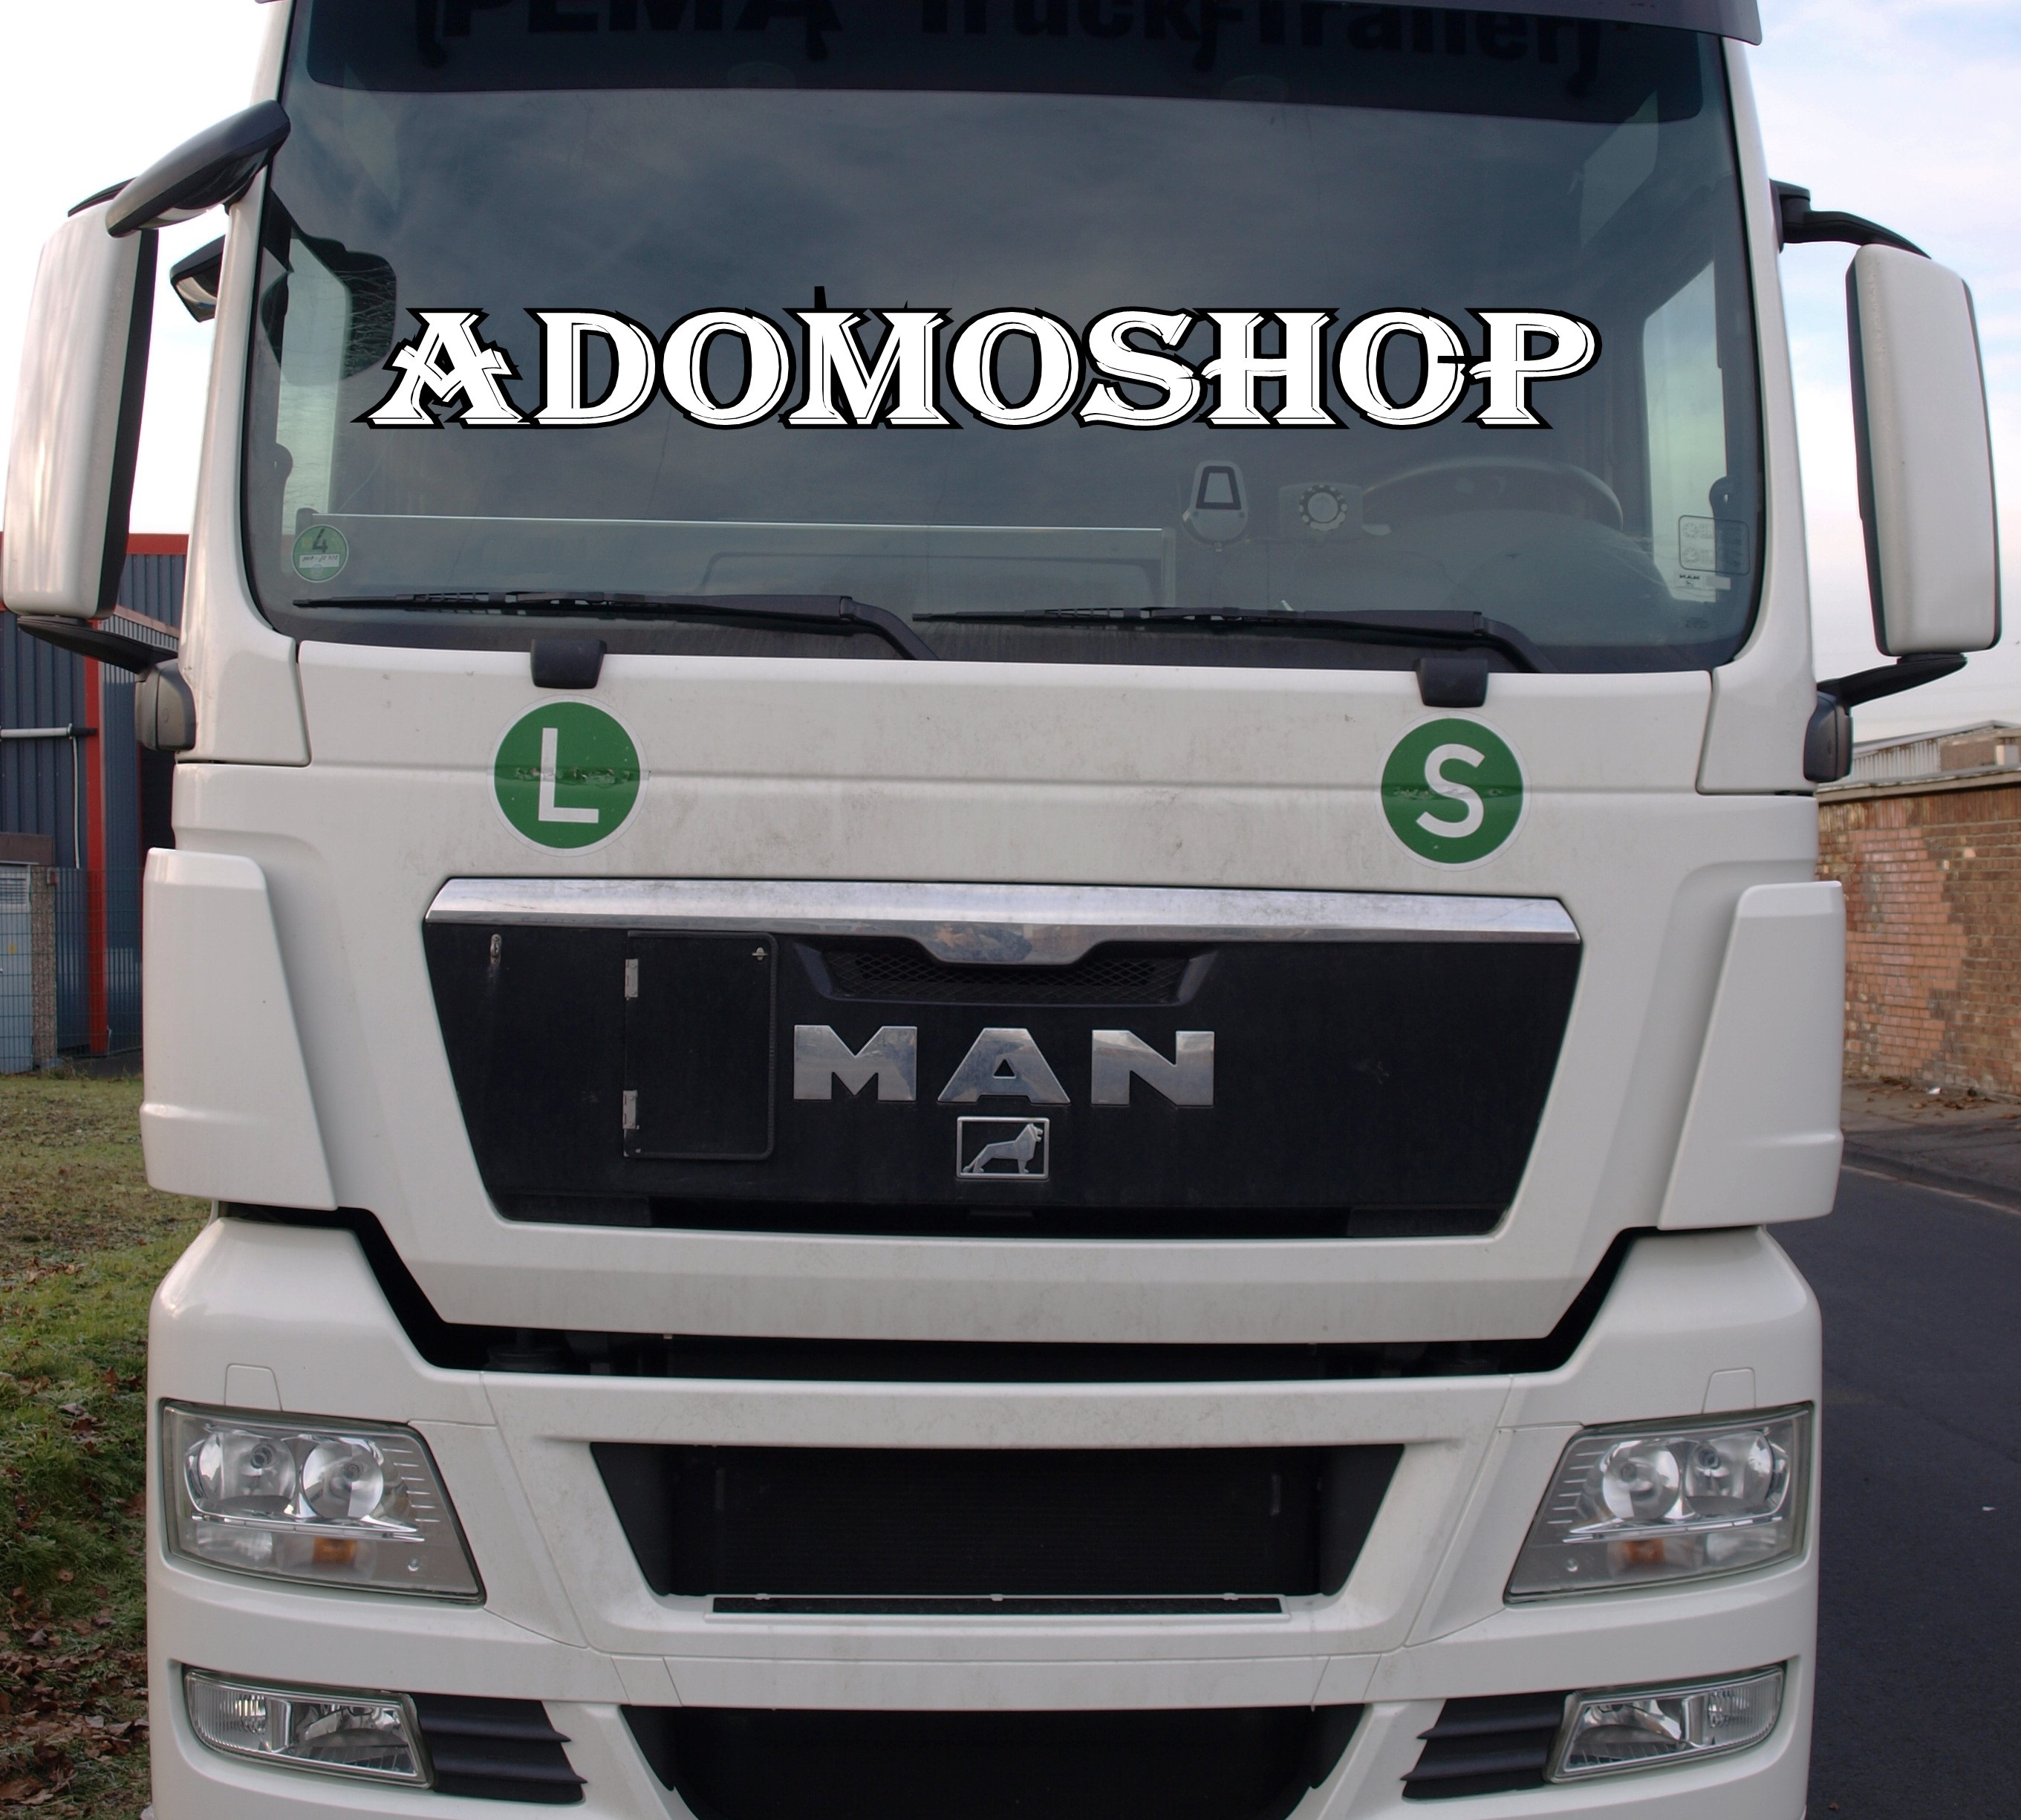 adomo lkw shop lkw tisch f r man tgx ausschnitt f r handy lkw zubeh r. Black Bedroom Furniture Sets. Home Design Ideas